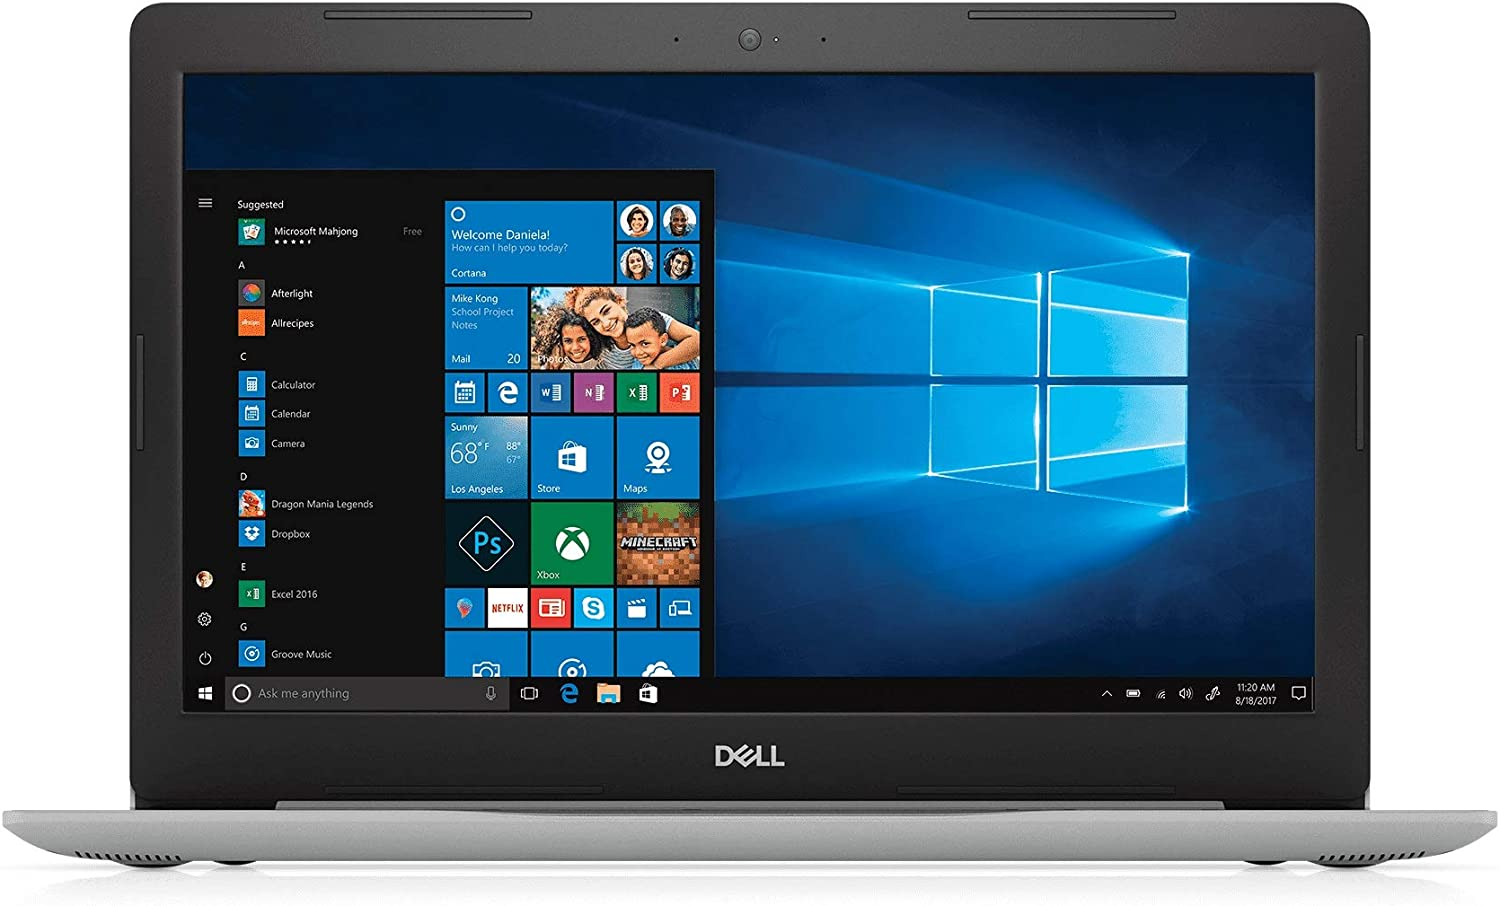 "Dell Inspiron 15 5000 Series 15.6"" HD Laptop, Intel Core i7-7500U, 20GB Memory (4GB DRAM + 16GB Intel Optane Memory), 1TB HDD, Windows 10 - Silver - i5570-7987SLV"